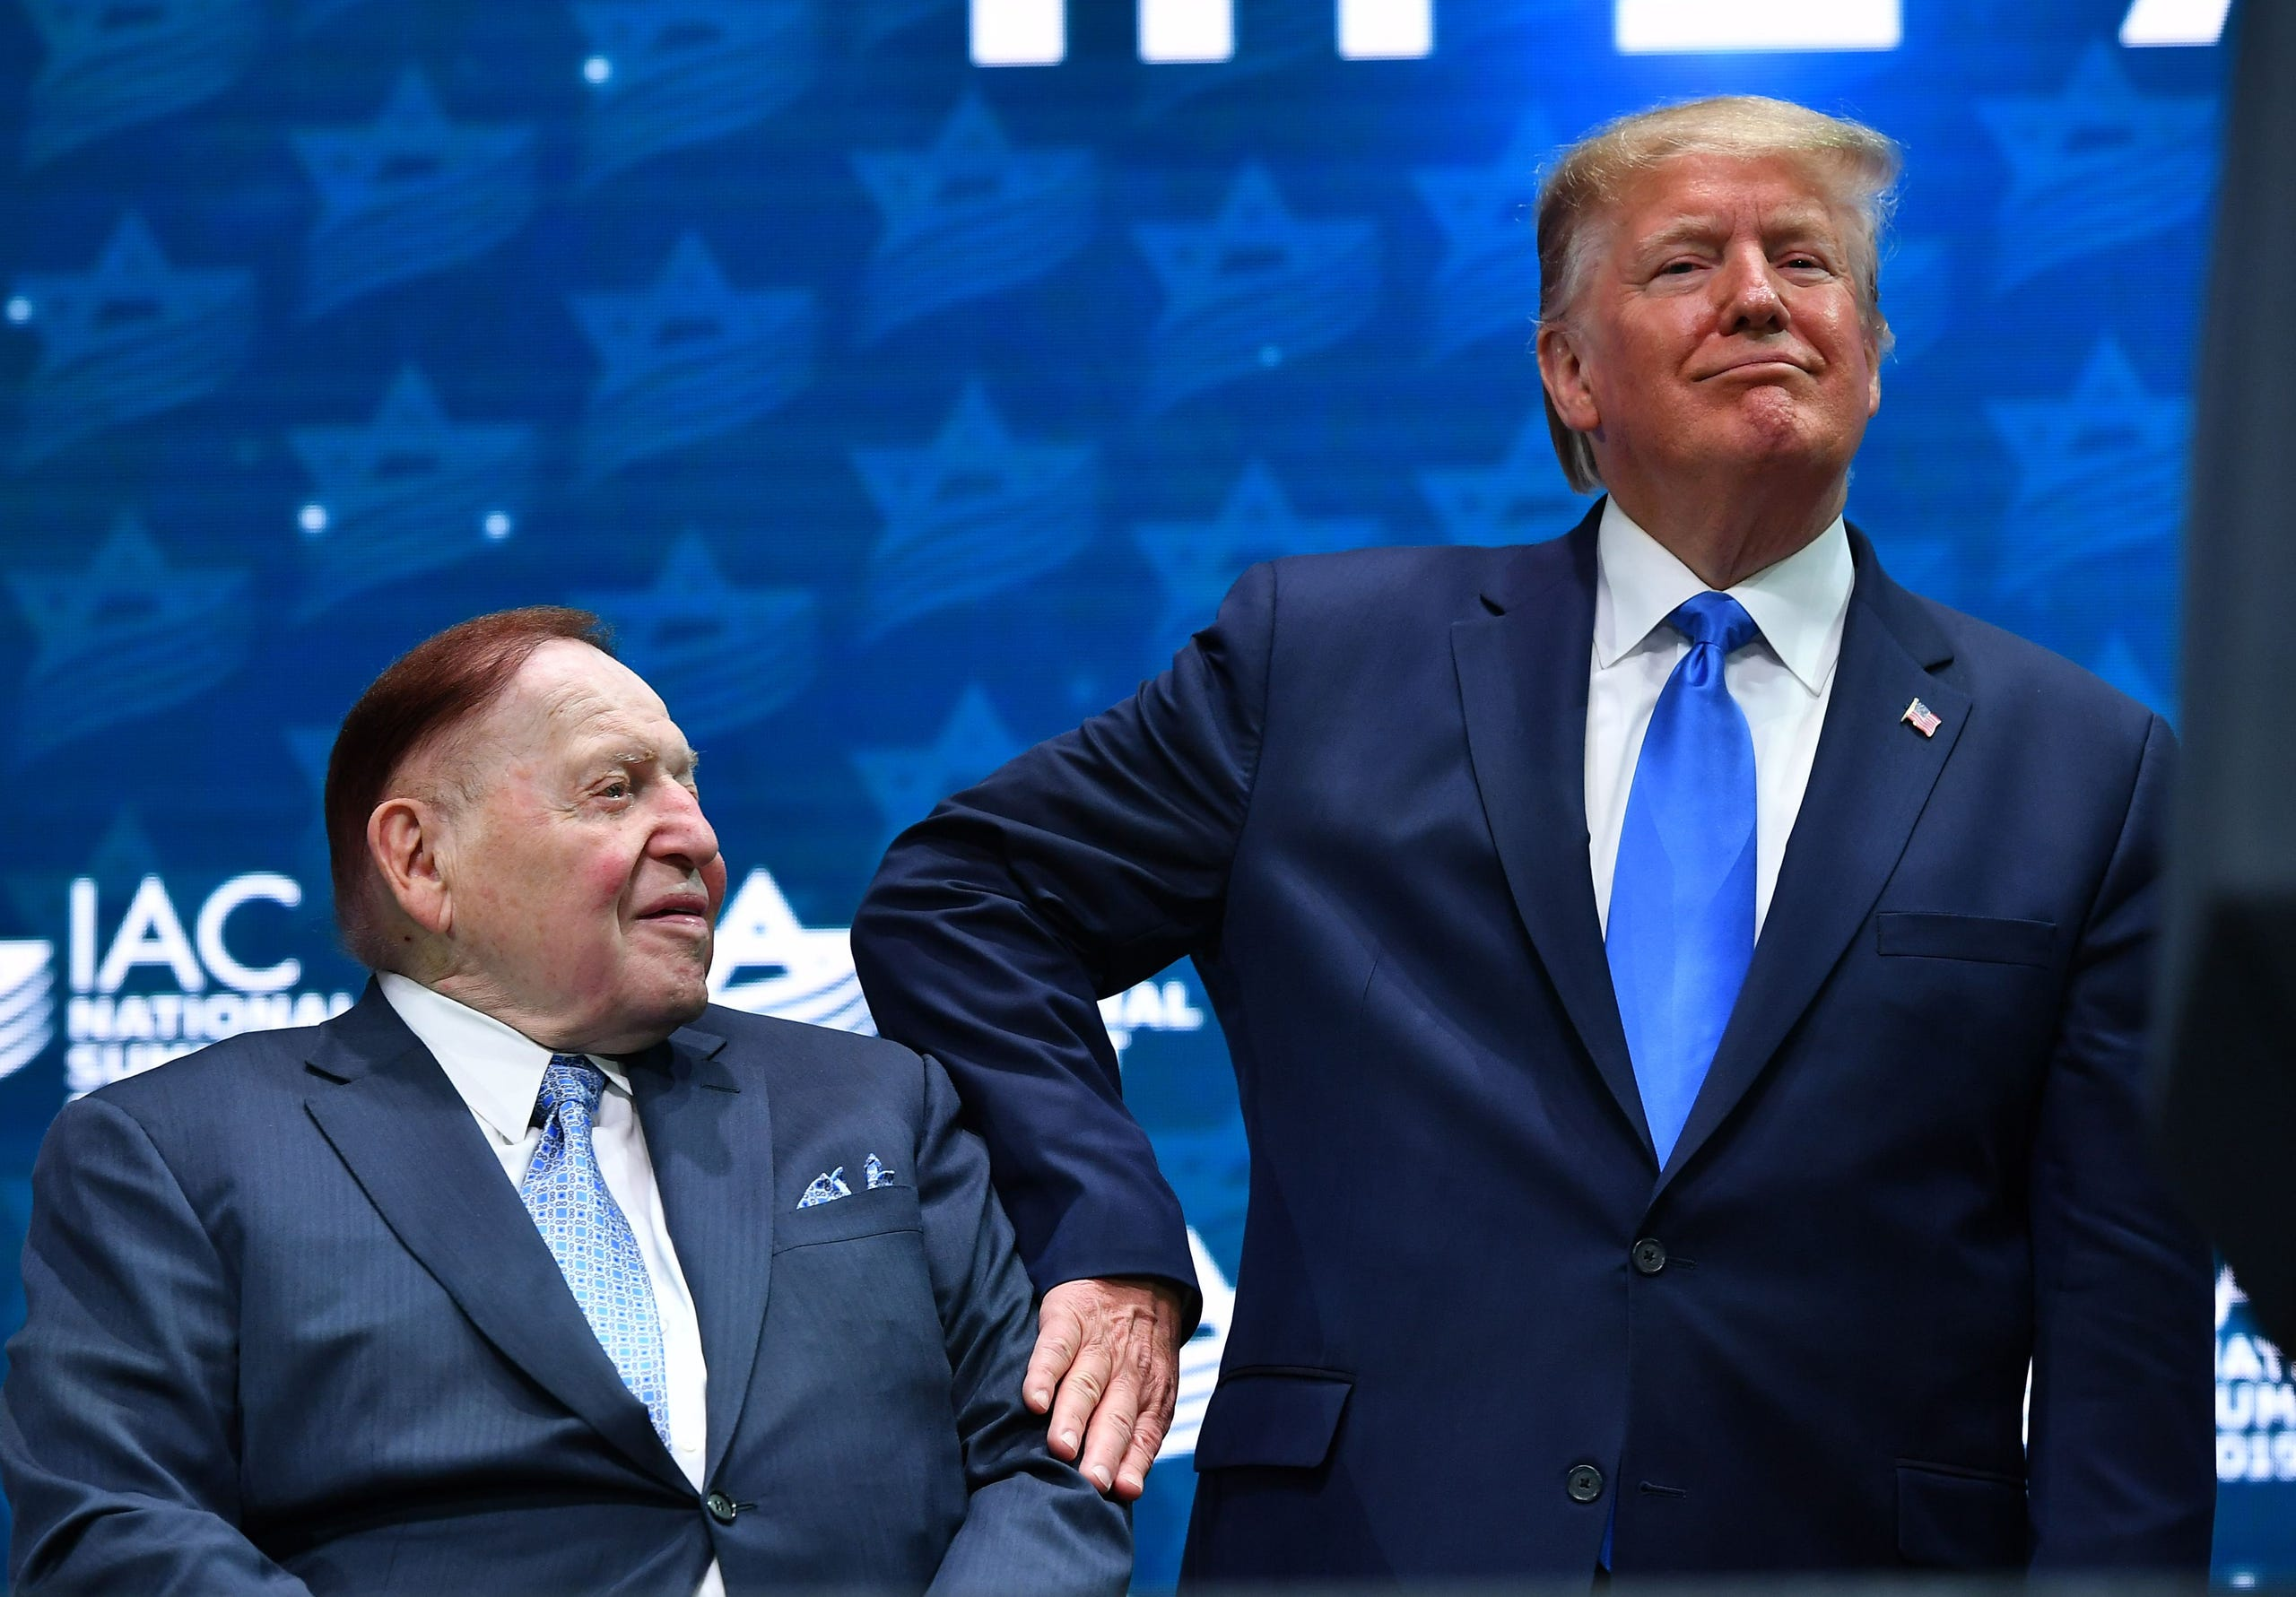 Sheldon Adelson: The Death Of Worlds Richest Casino CEO 1933-2021